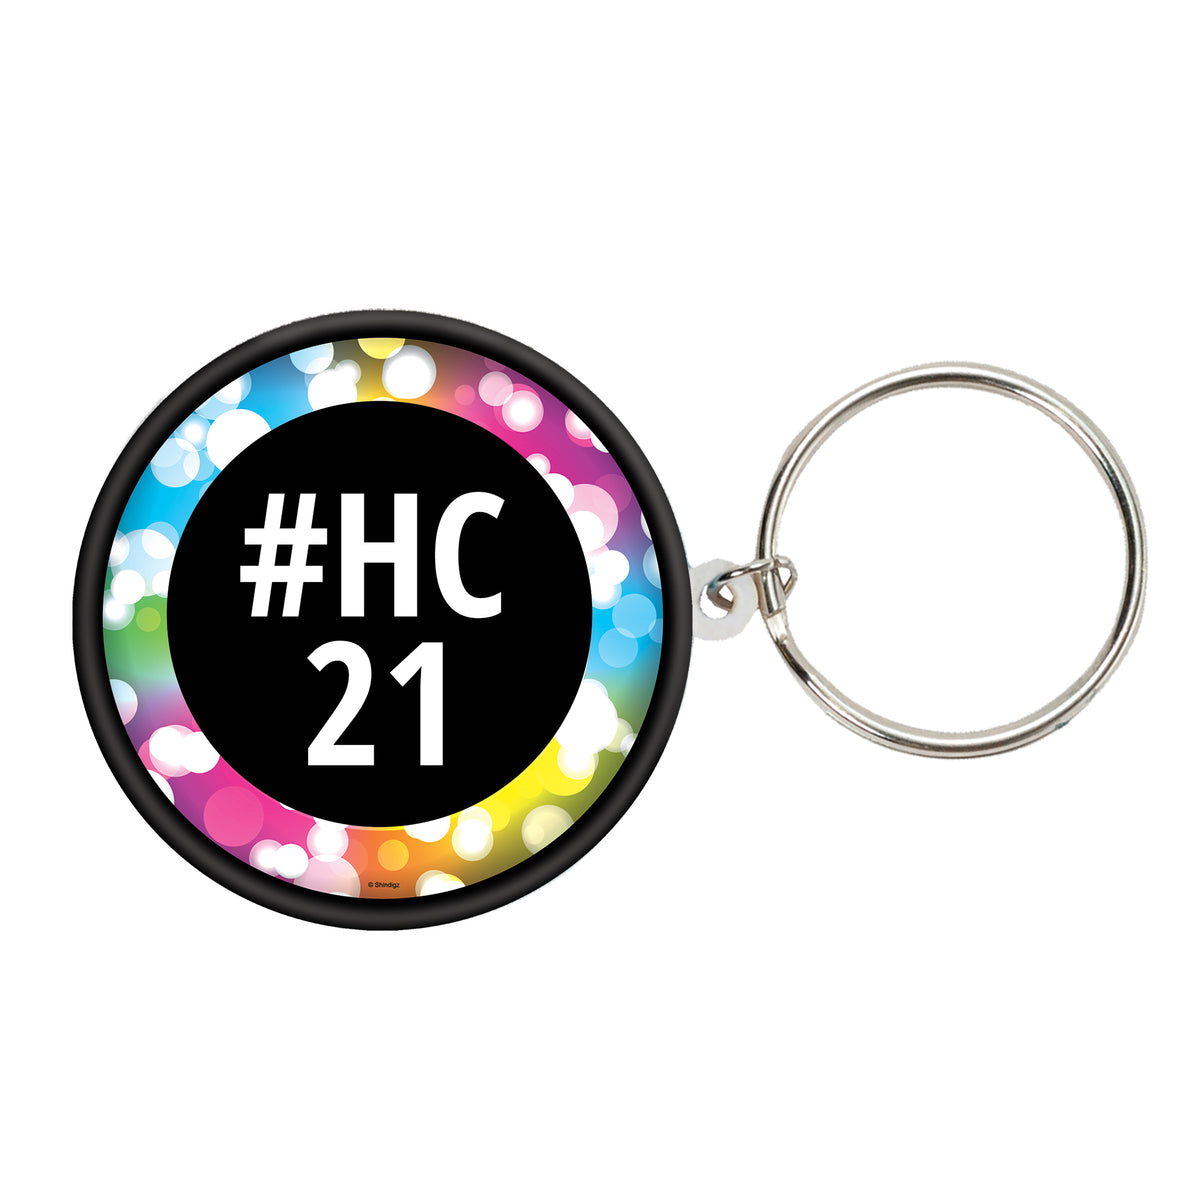 Let's Glow Crazy Personalized Key Chain